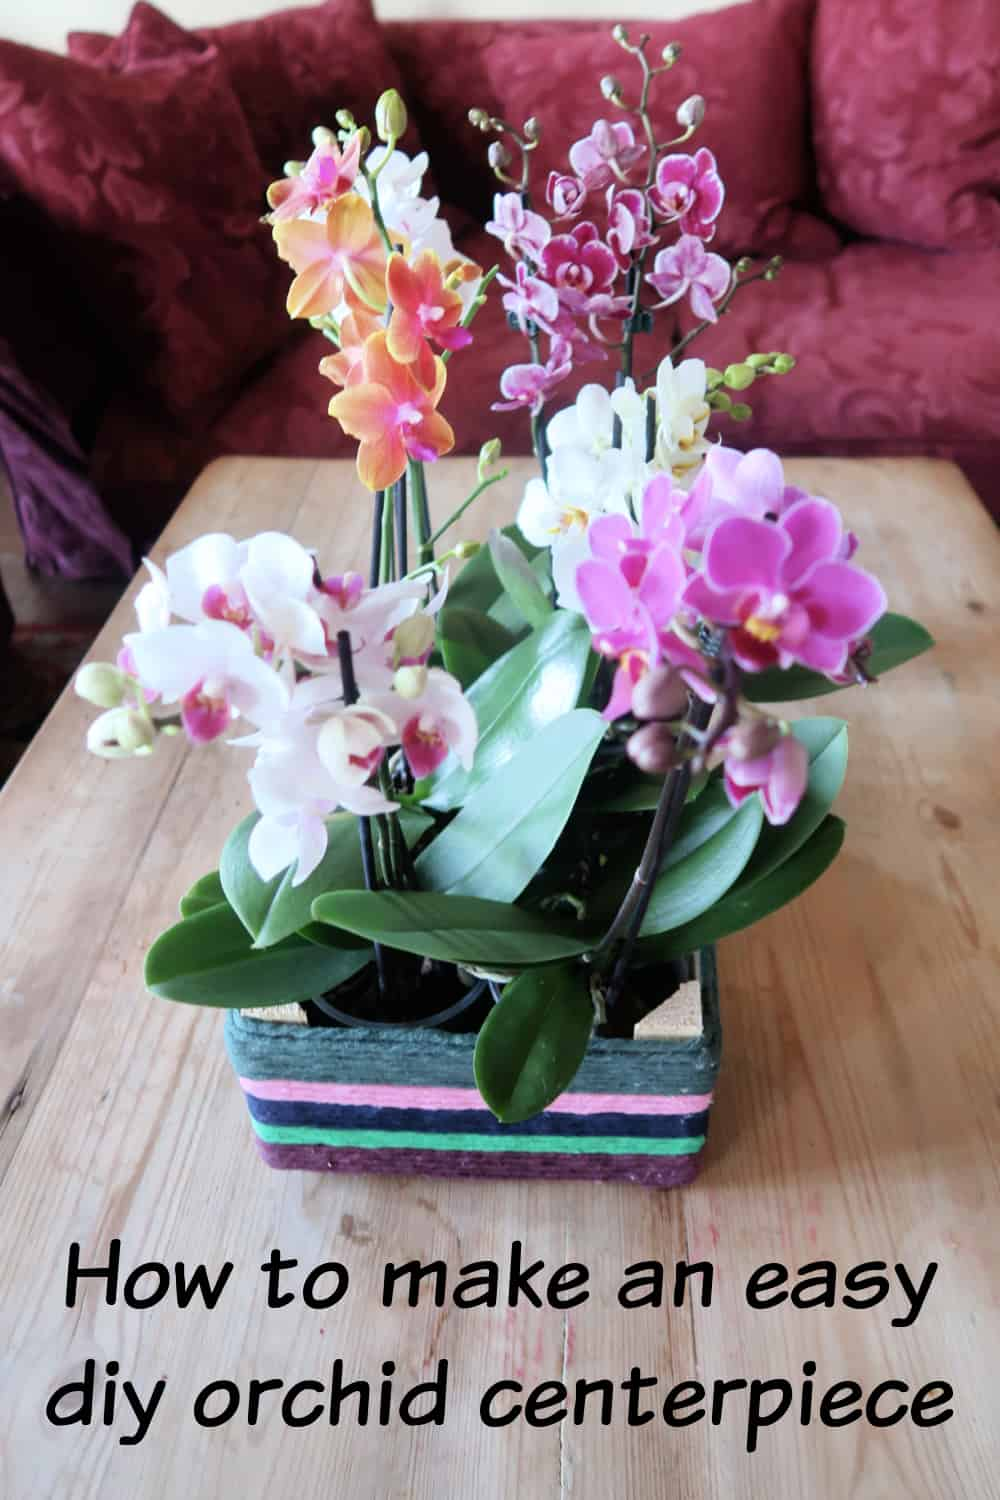 In the simple tutorial, I show you how to upcycle an old fruit crate into a DIY orchid centerpiece to swap your moth orchid plants in and out of it as they flower and for maintenance such as watering.